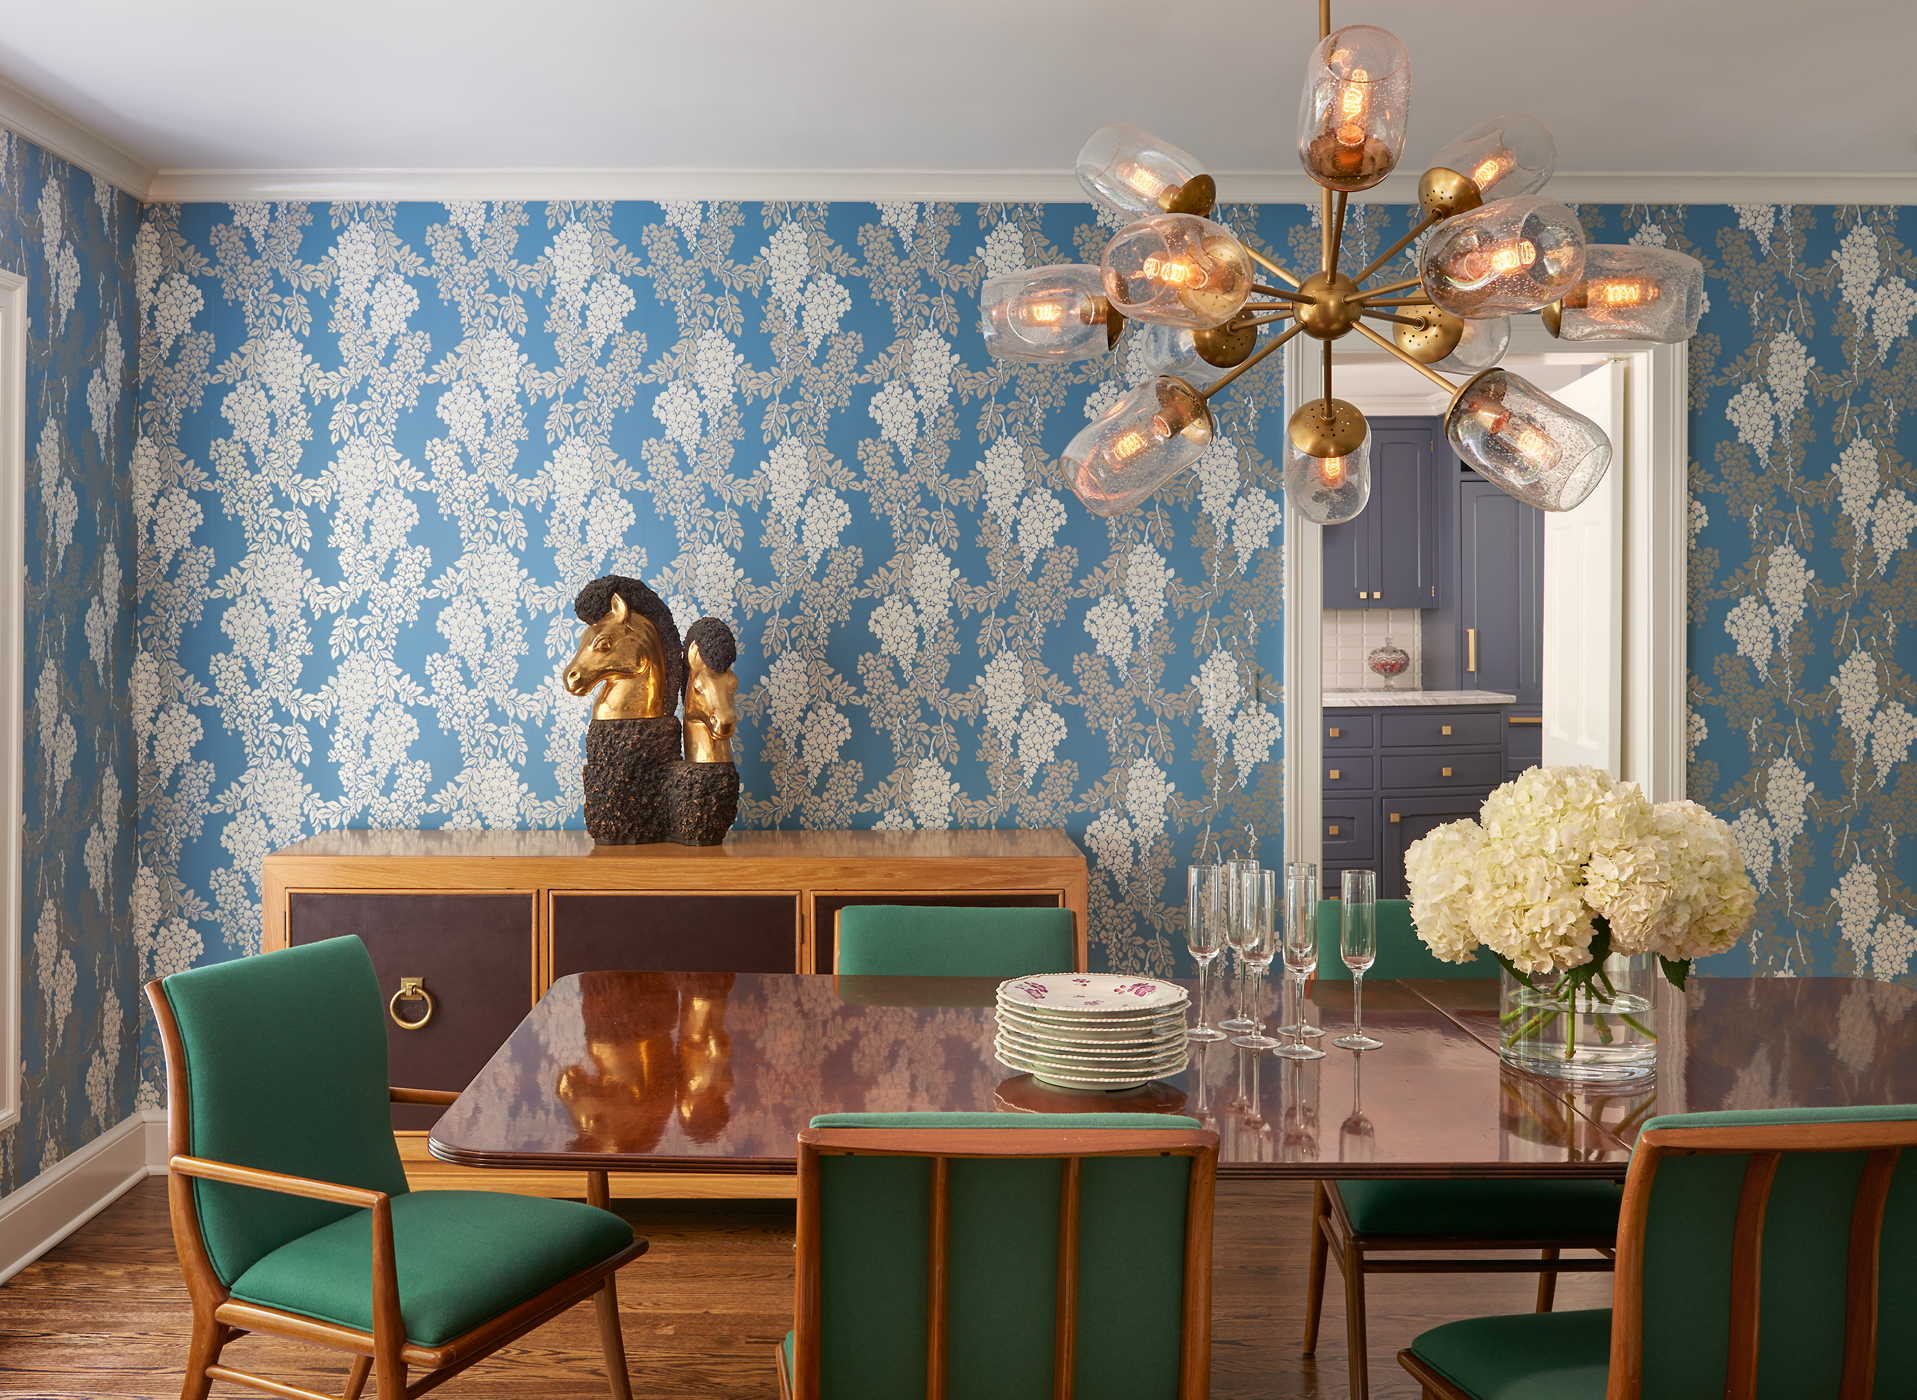 Washington, DC, dining room with vivid wallpaper and modern chandelier. Architecture by Barnes Vanze Architects, Inc.